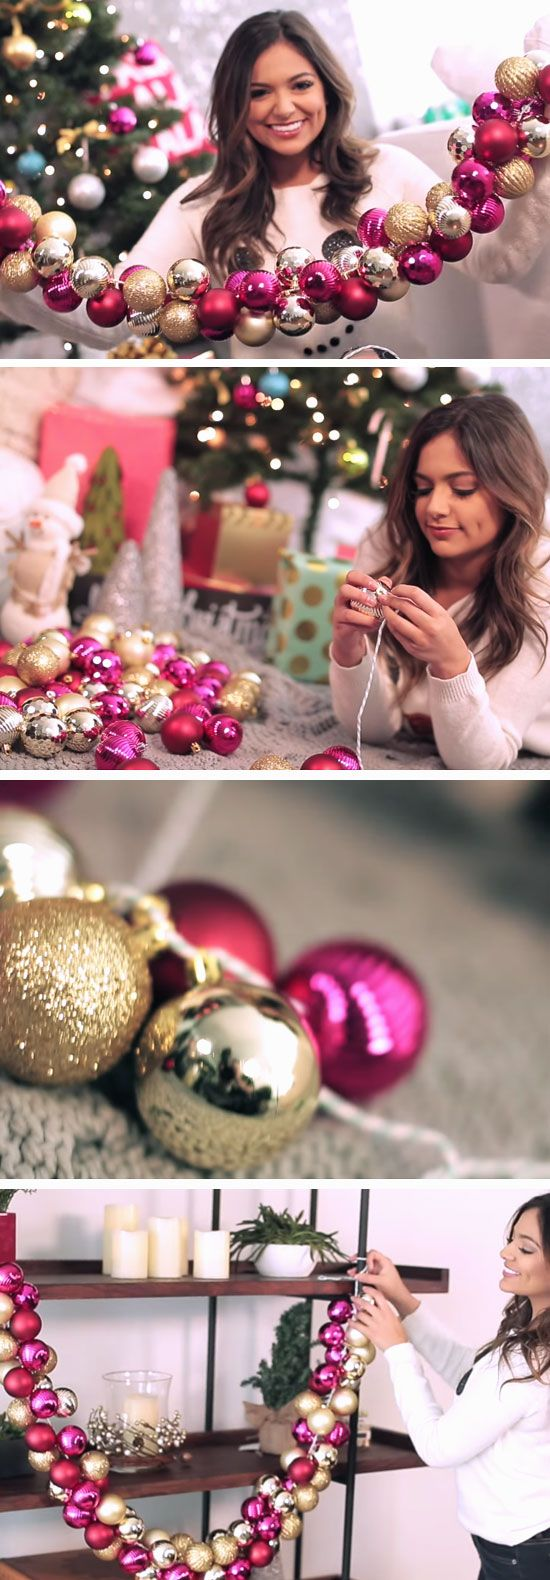 2018 tendencias de navidad 7 decoracion de interiores for Decoracion navidad 2018 tendencias